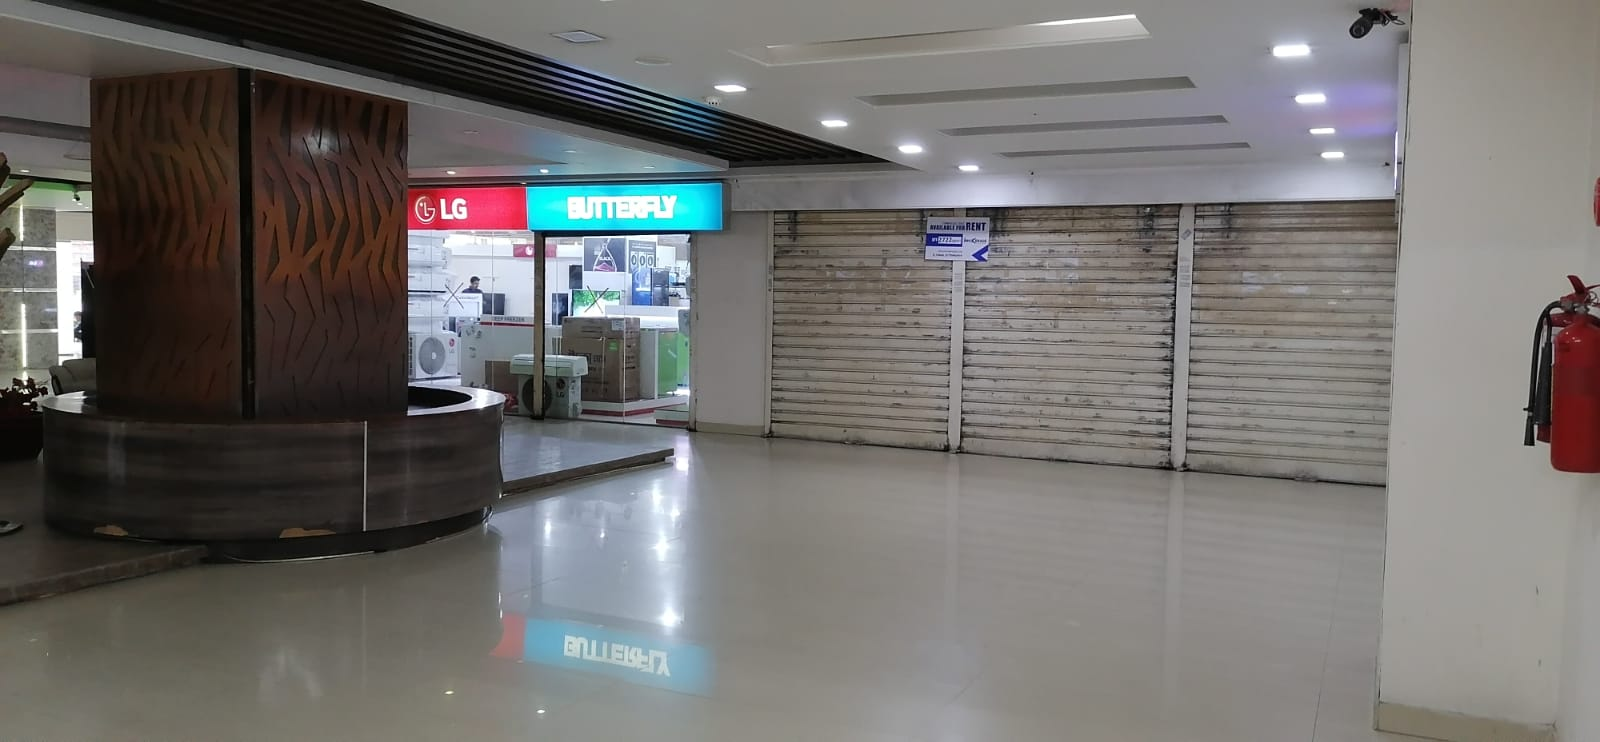 2722-sft-commercial-space-for-rent-in-banglamotor-ground-floor-527532